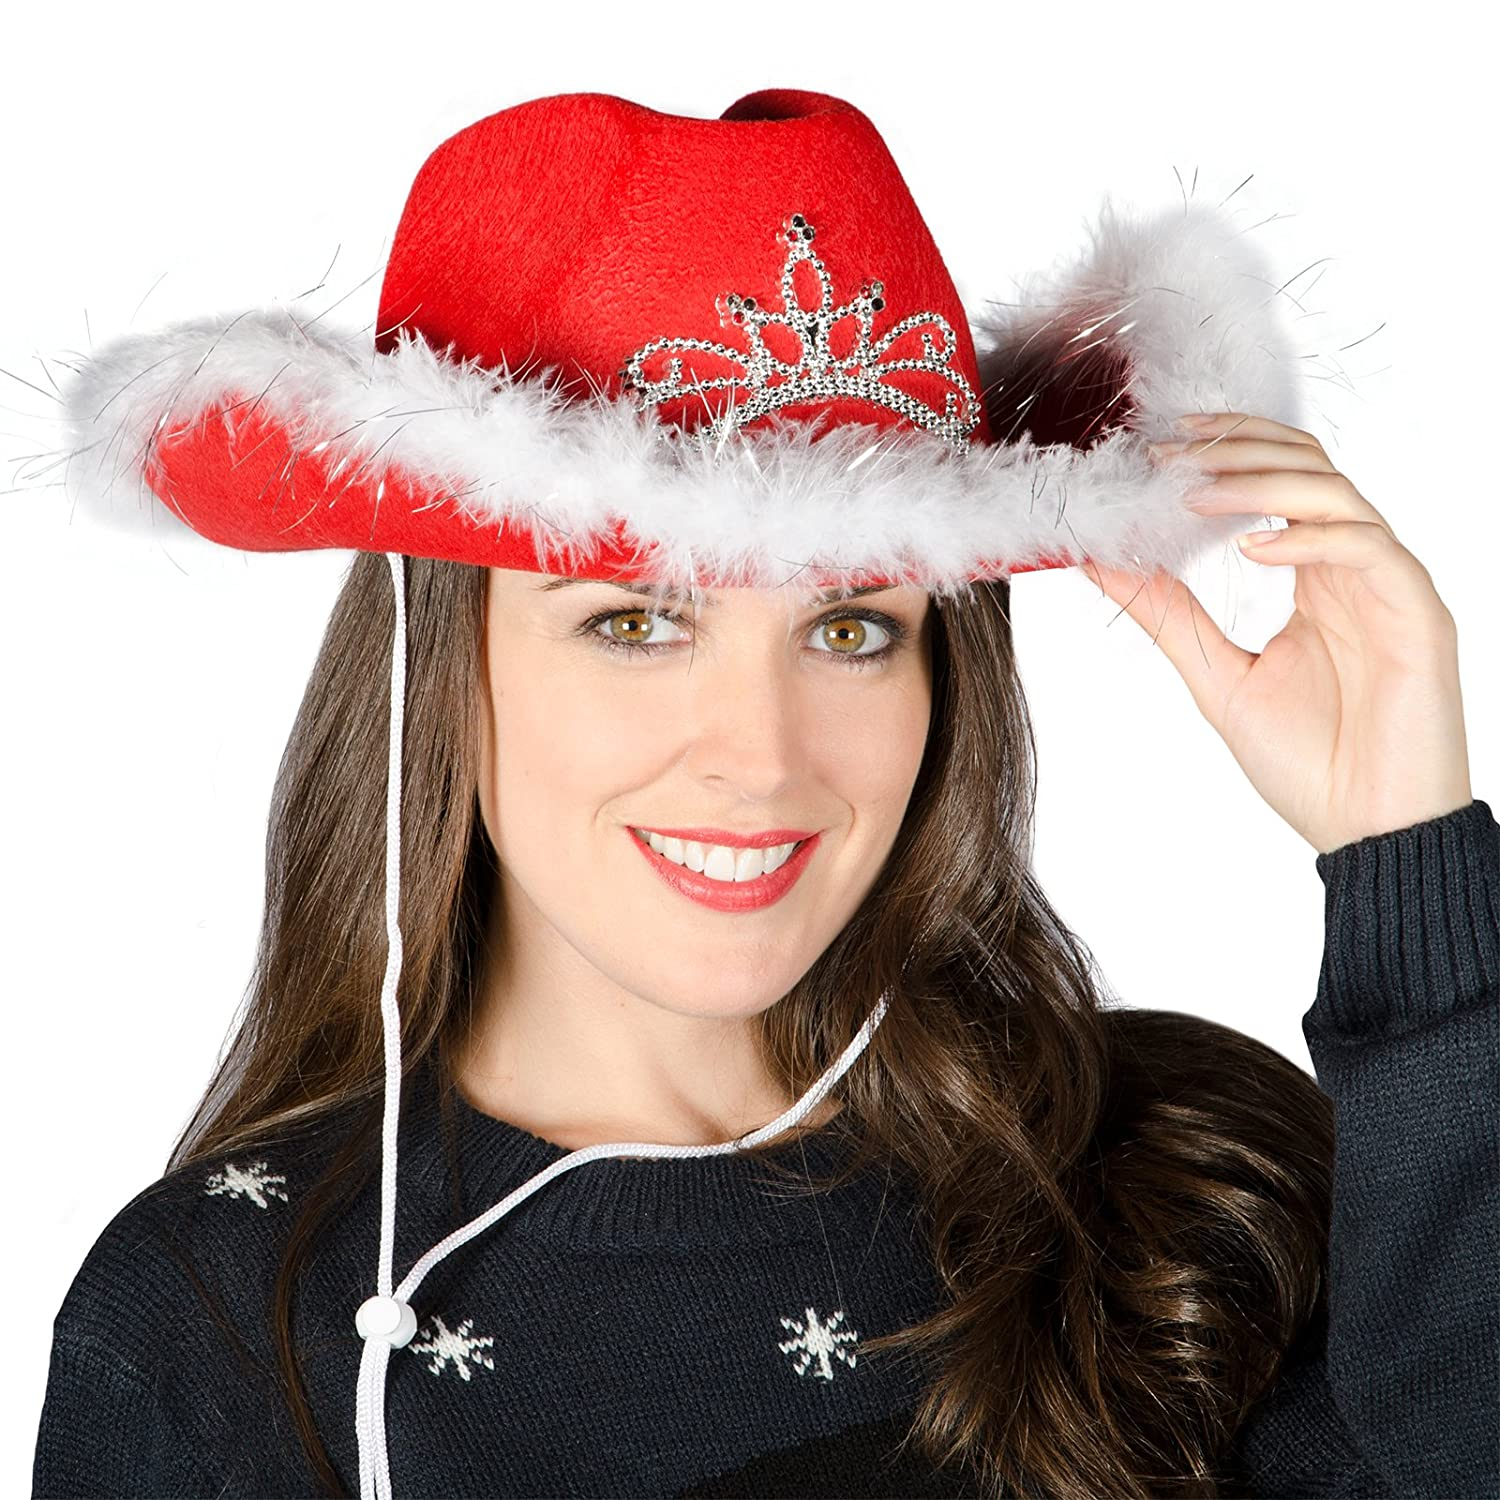 6 Christmas Festive Red Cowboy Hat / Feather Trim & Light Up Flashing LED Tiara xs-stock.com Ltd